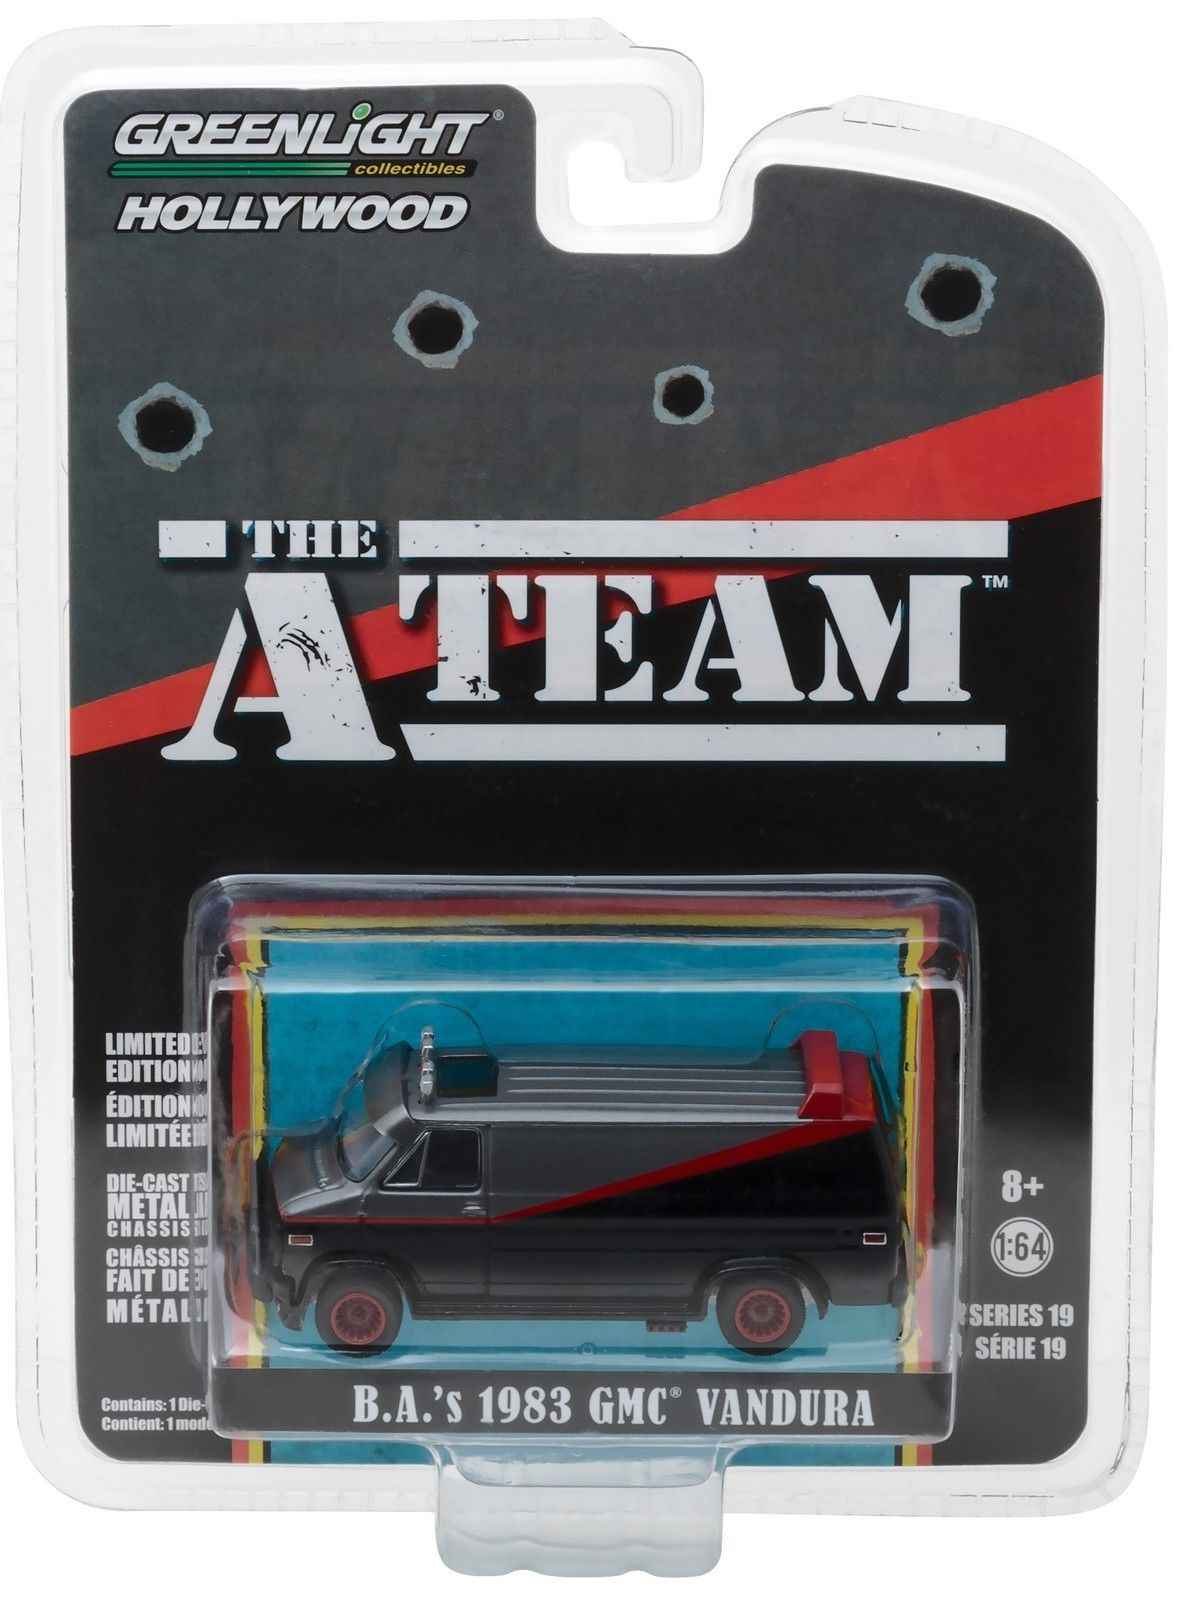 GL 1:64 B.A.'S 1983 GMC Vandura The A Team alloy model Car Diecast Metal Toys Birthday Gift For Kids Boy